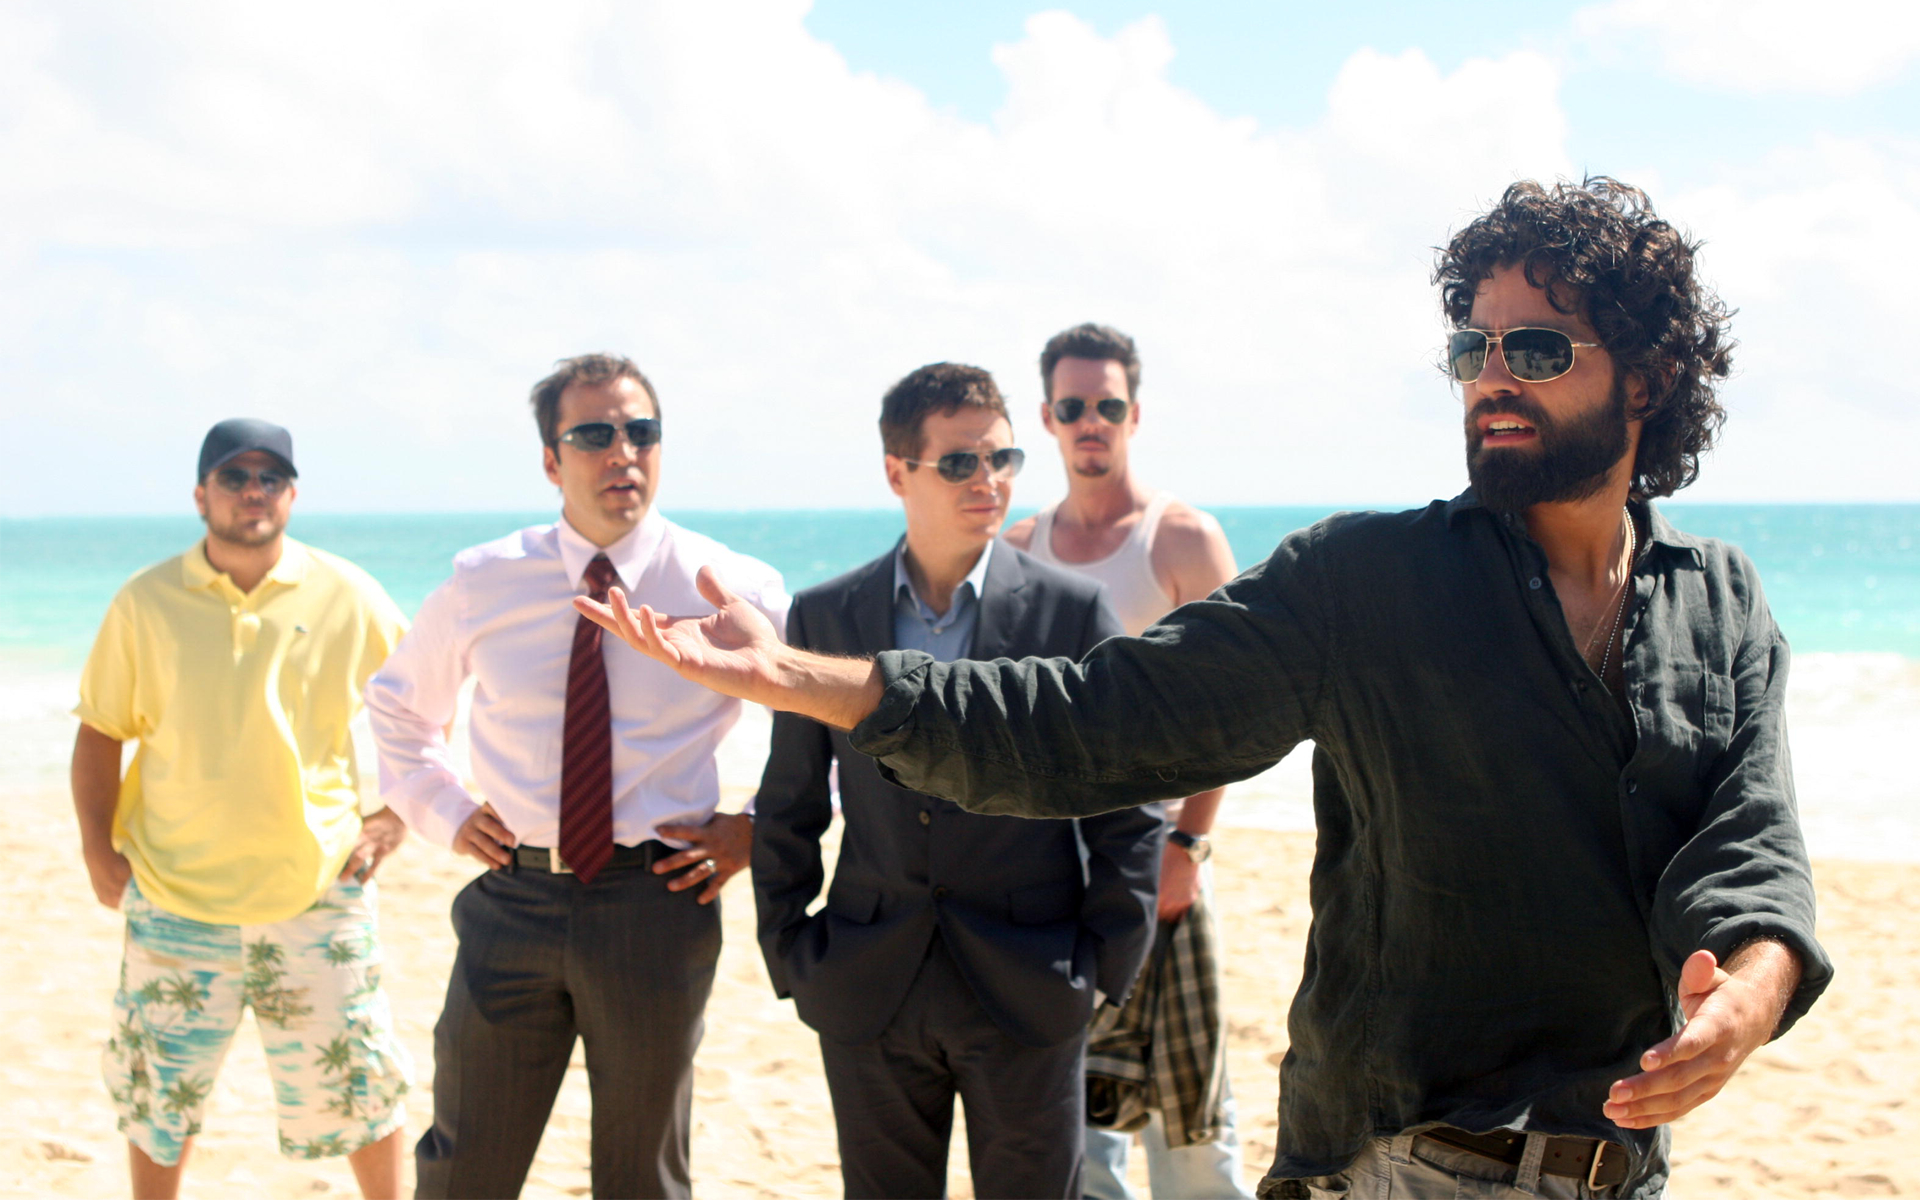 Entourage jeremy piven ari HD Wallpaper